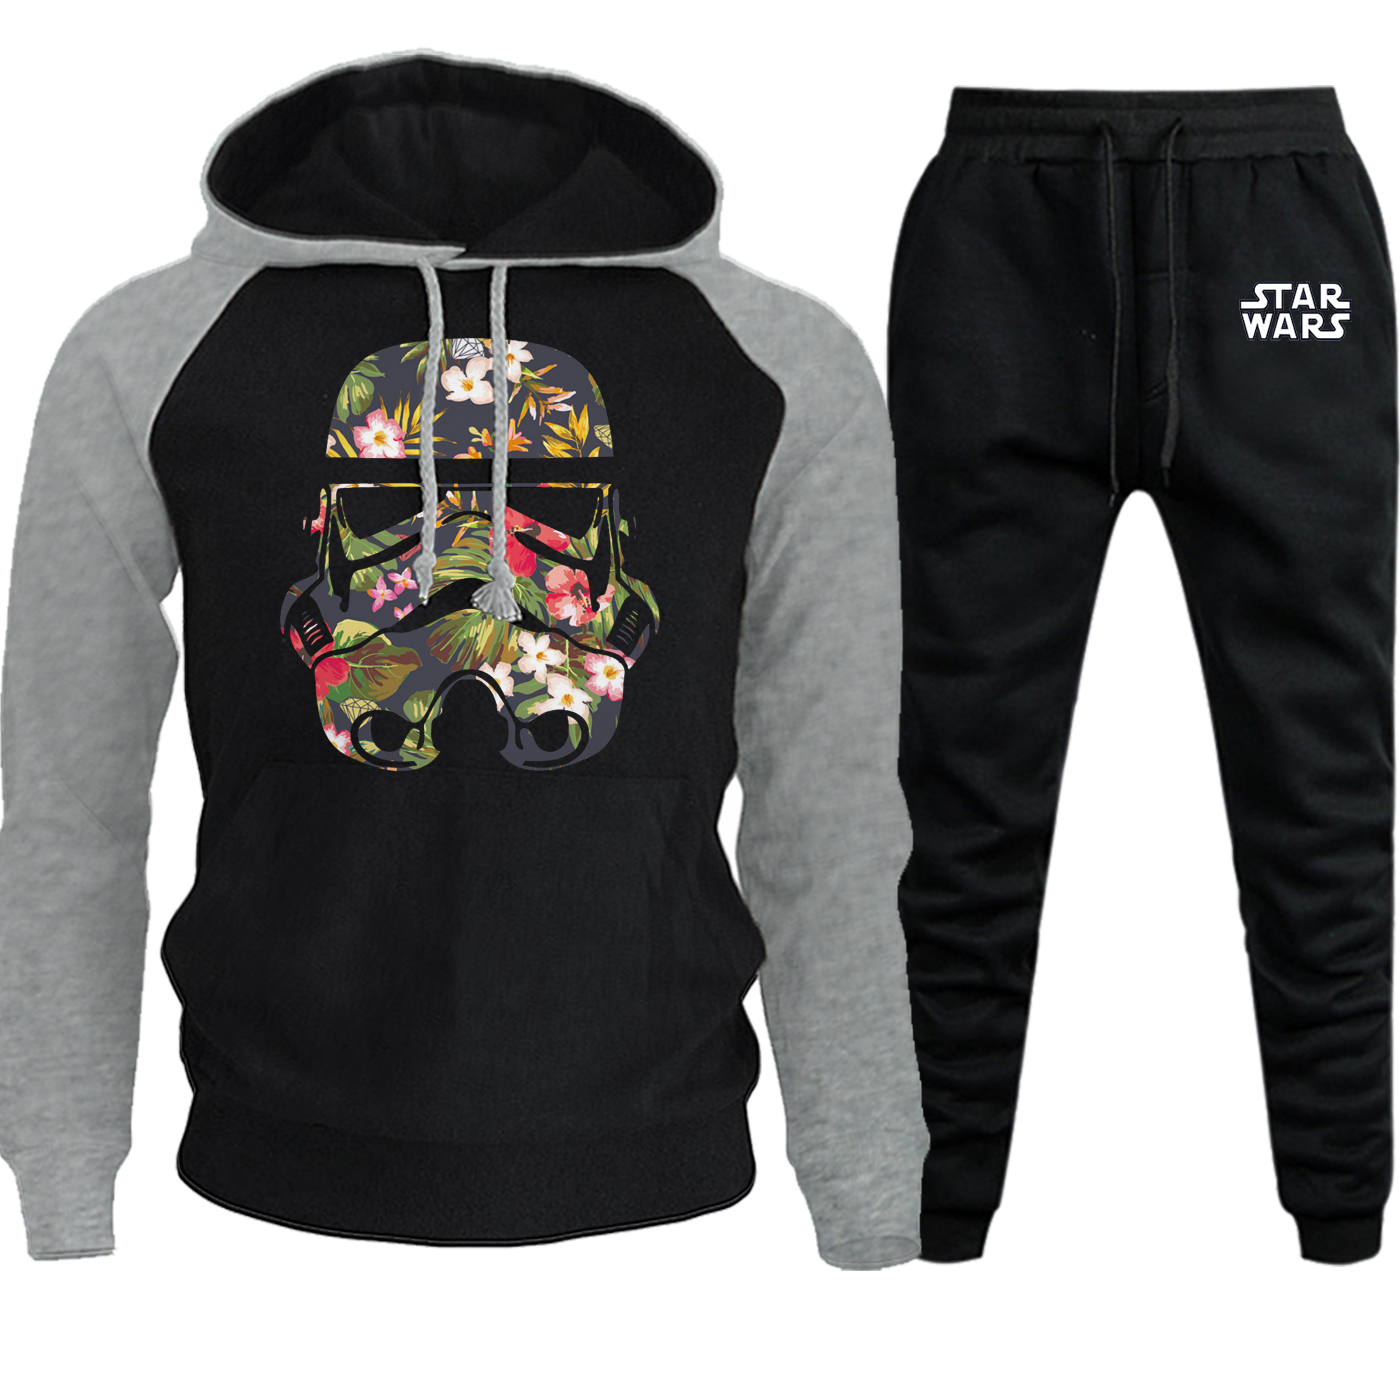 Star Wars Funny Stormtrooper Sweatshirt Mens Raglan Hoodies Autumn Winter 2019 Casual Fleece Suit Male Hooded+Pants 2 Piece Set